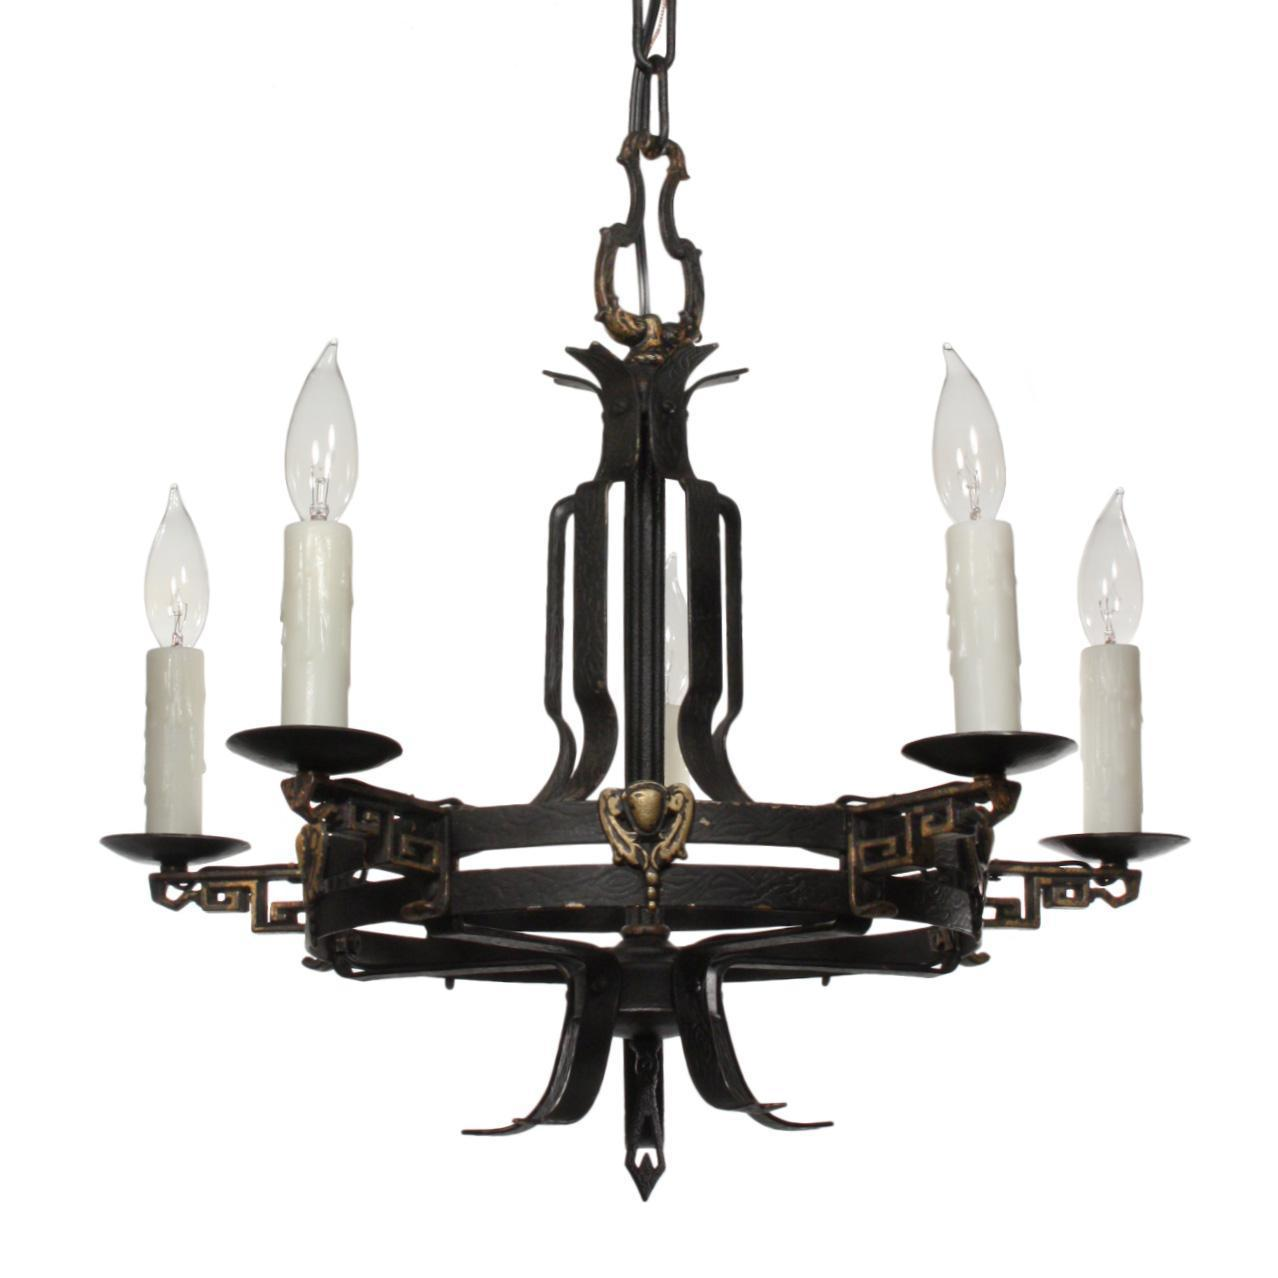 Handsome Antique Tudor Iron Chandelier, c.1920